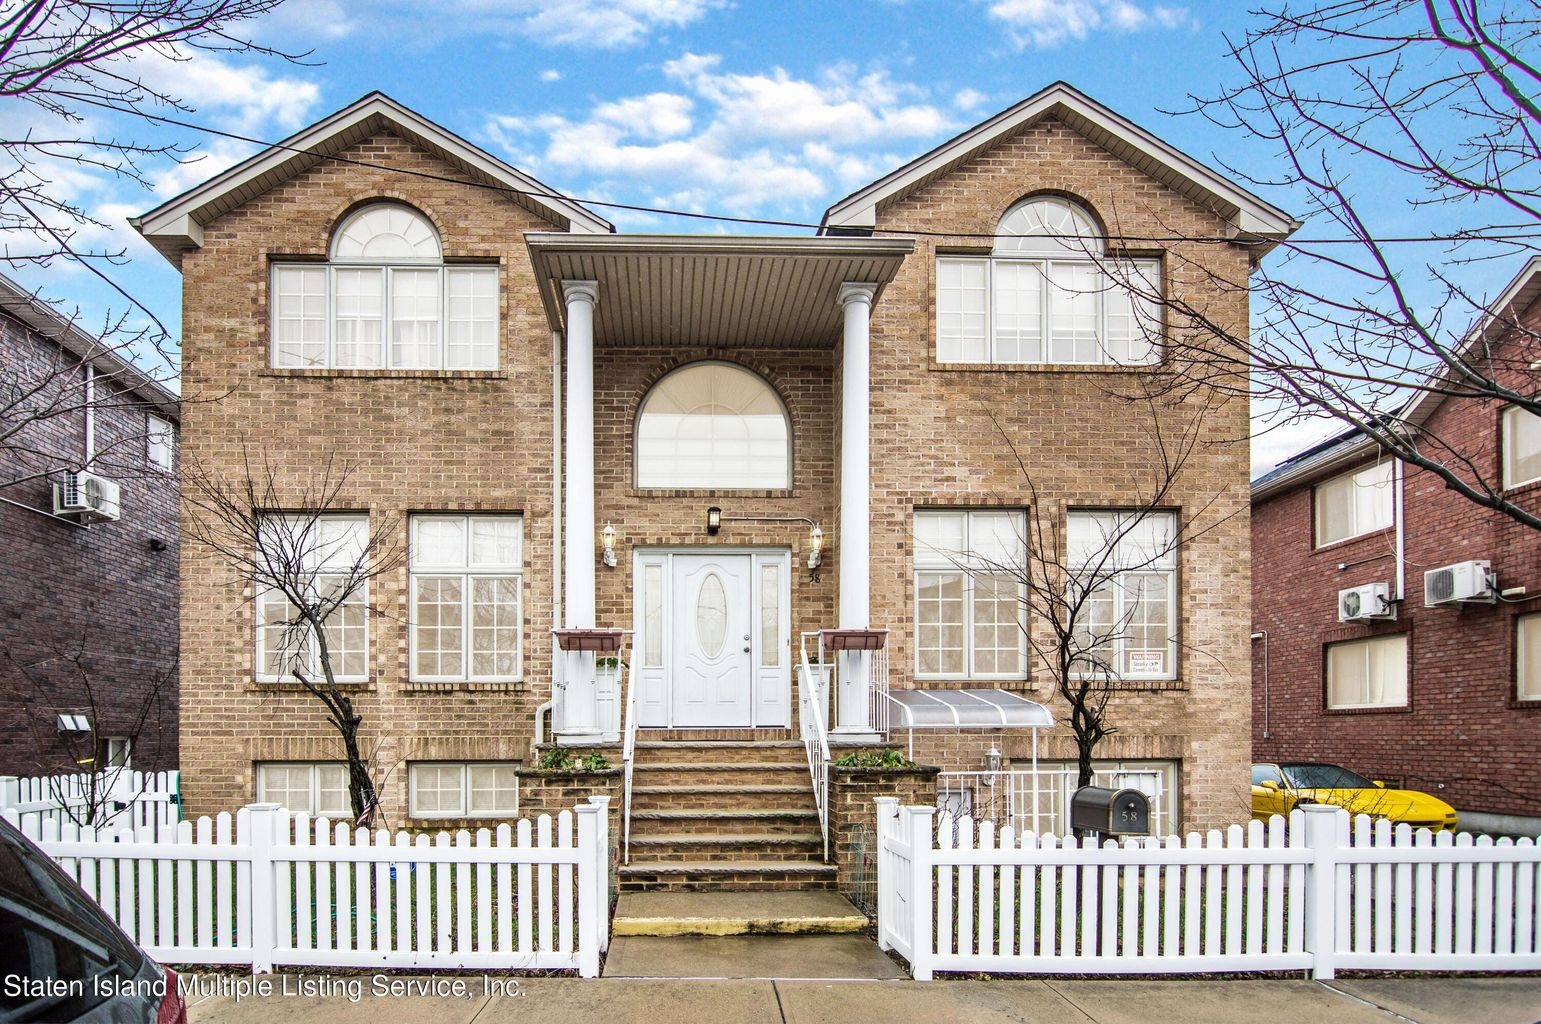 58 Foch Ave: Welcome Home, 58 Foch Ave